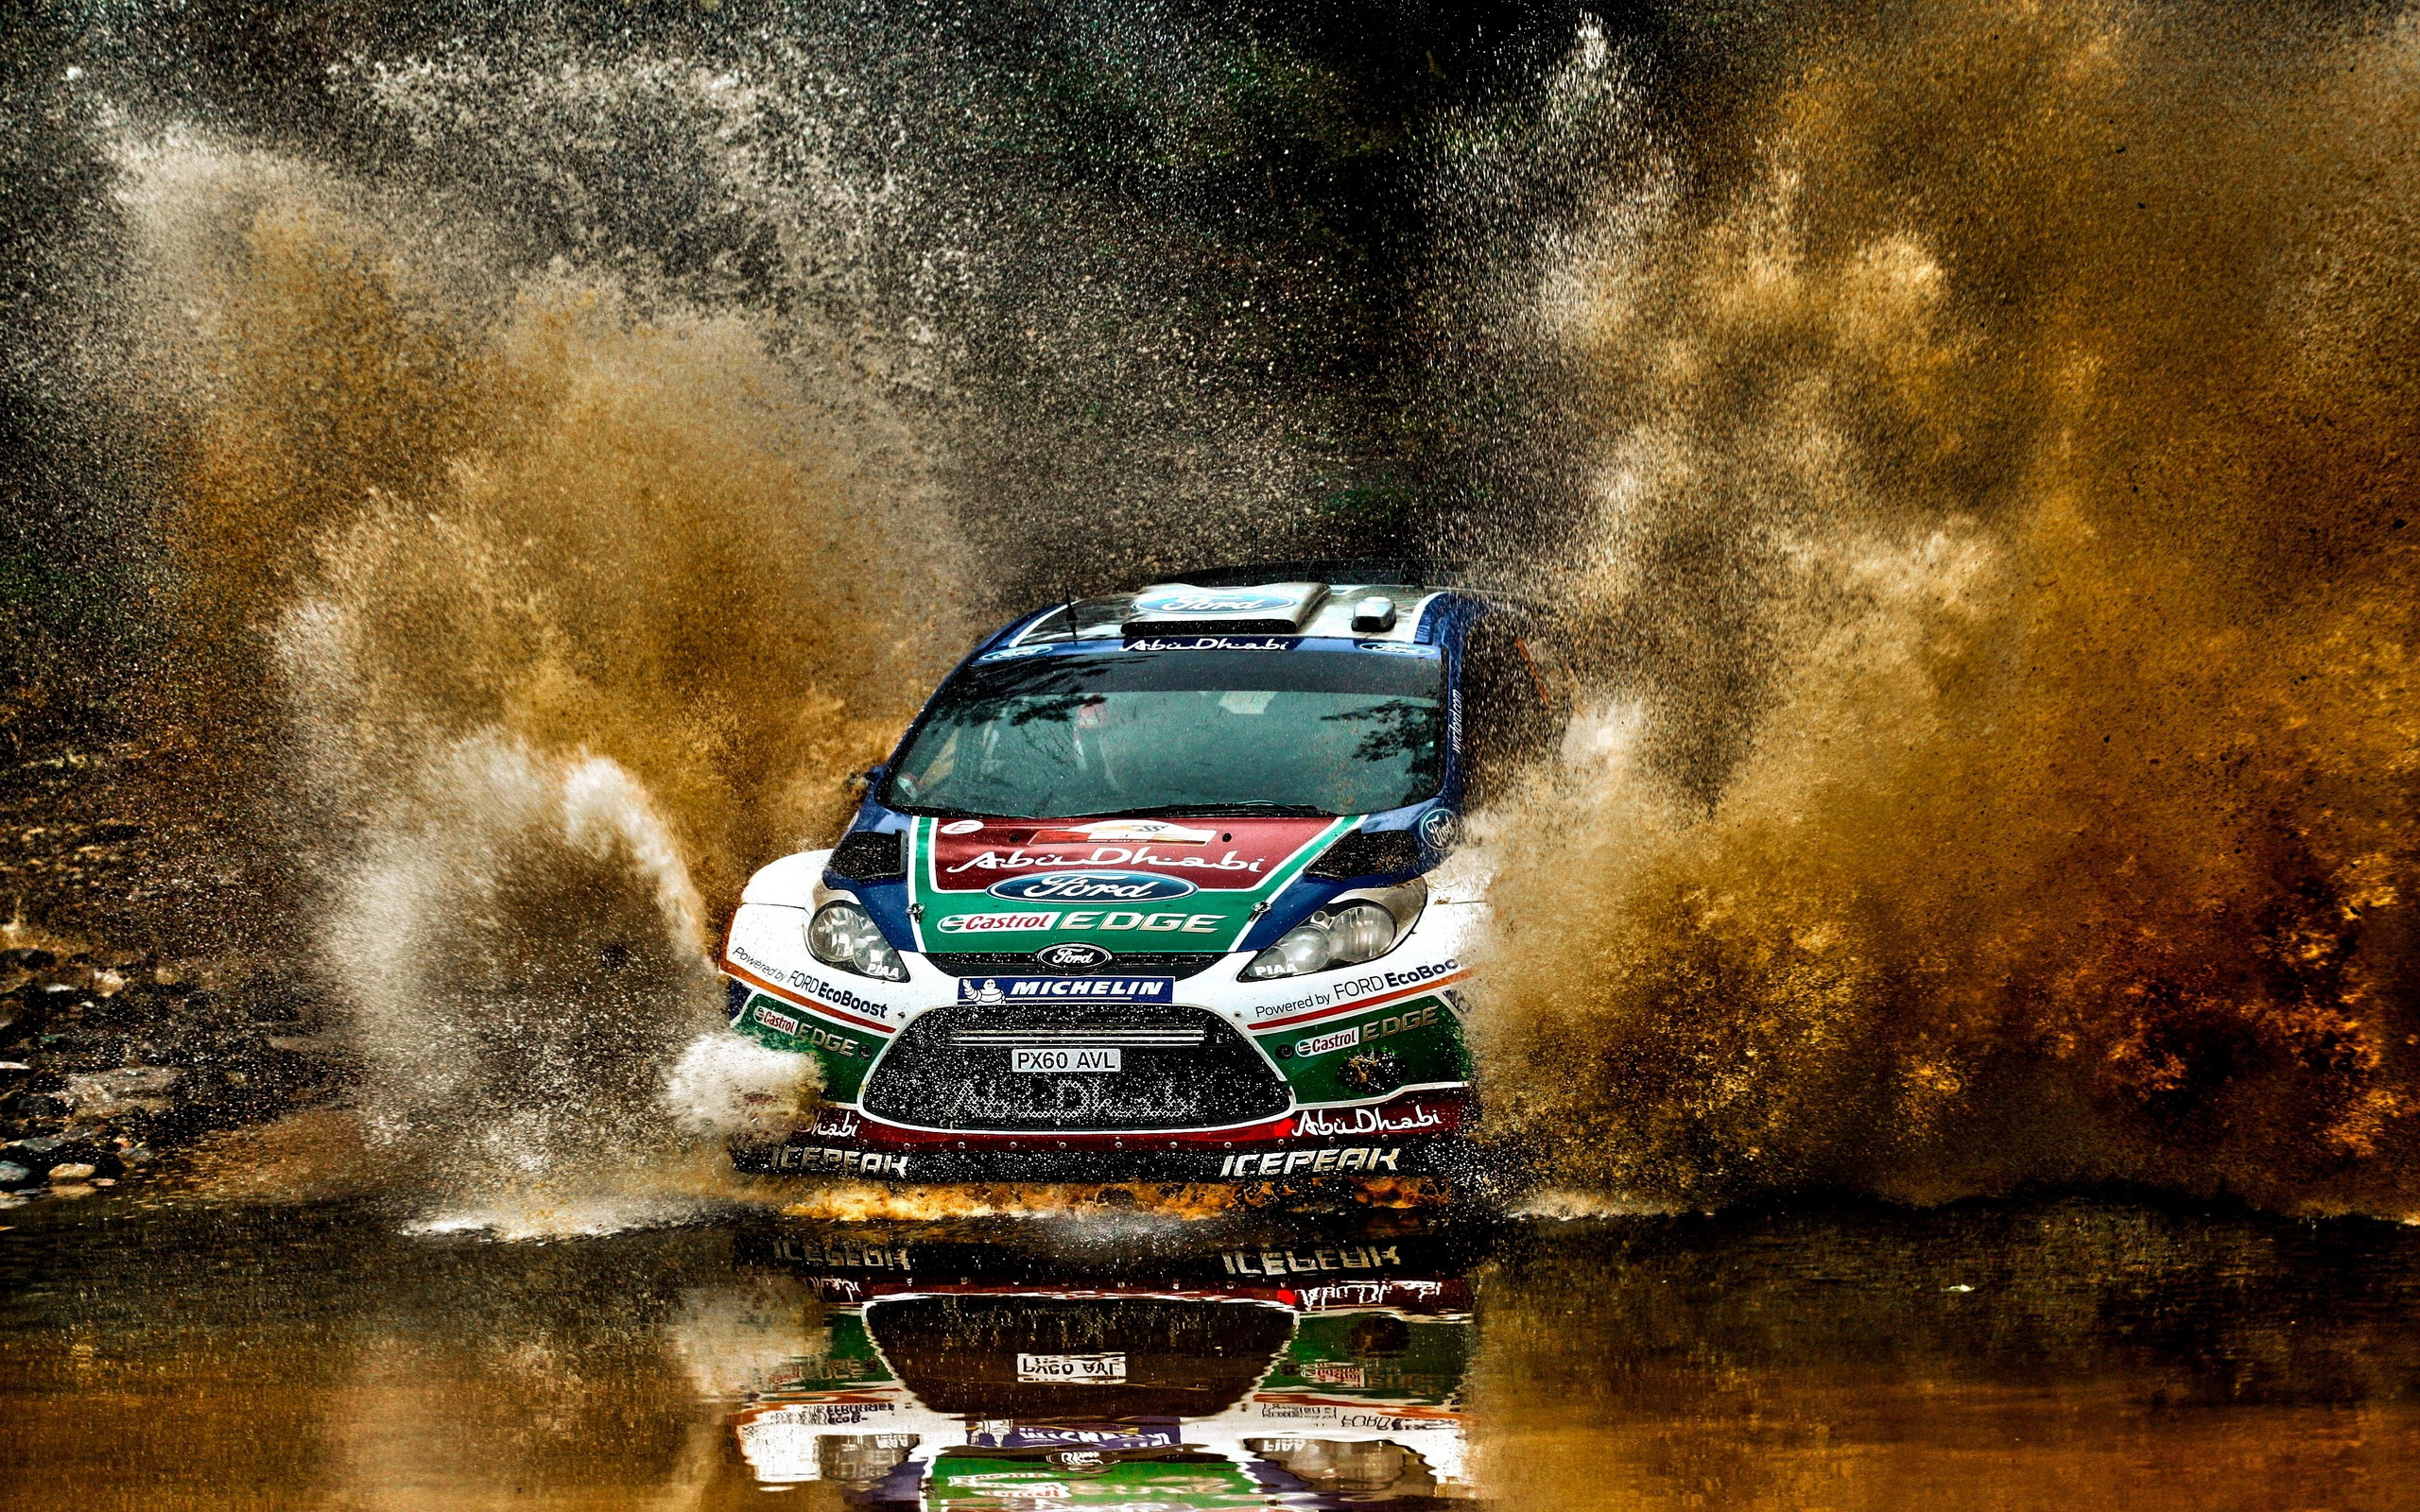 2560x1600 - Rallying Wallpapers 1